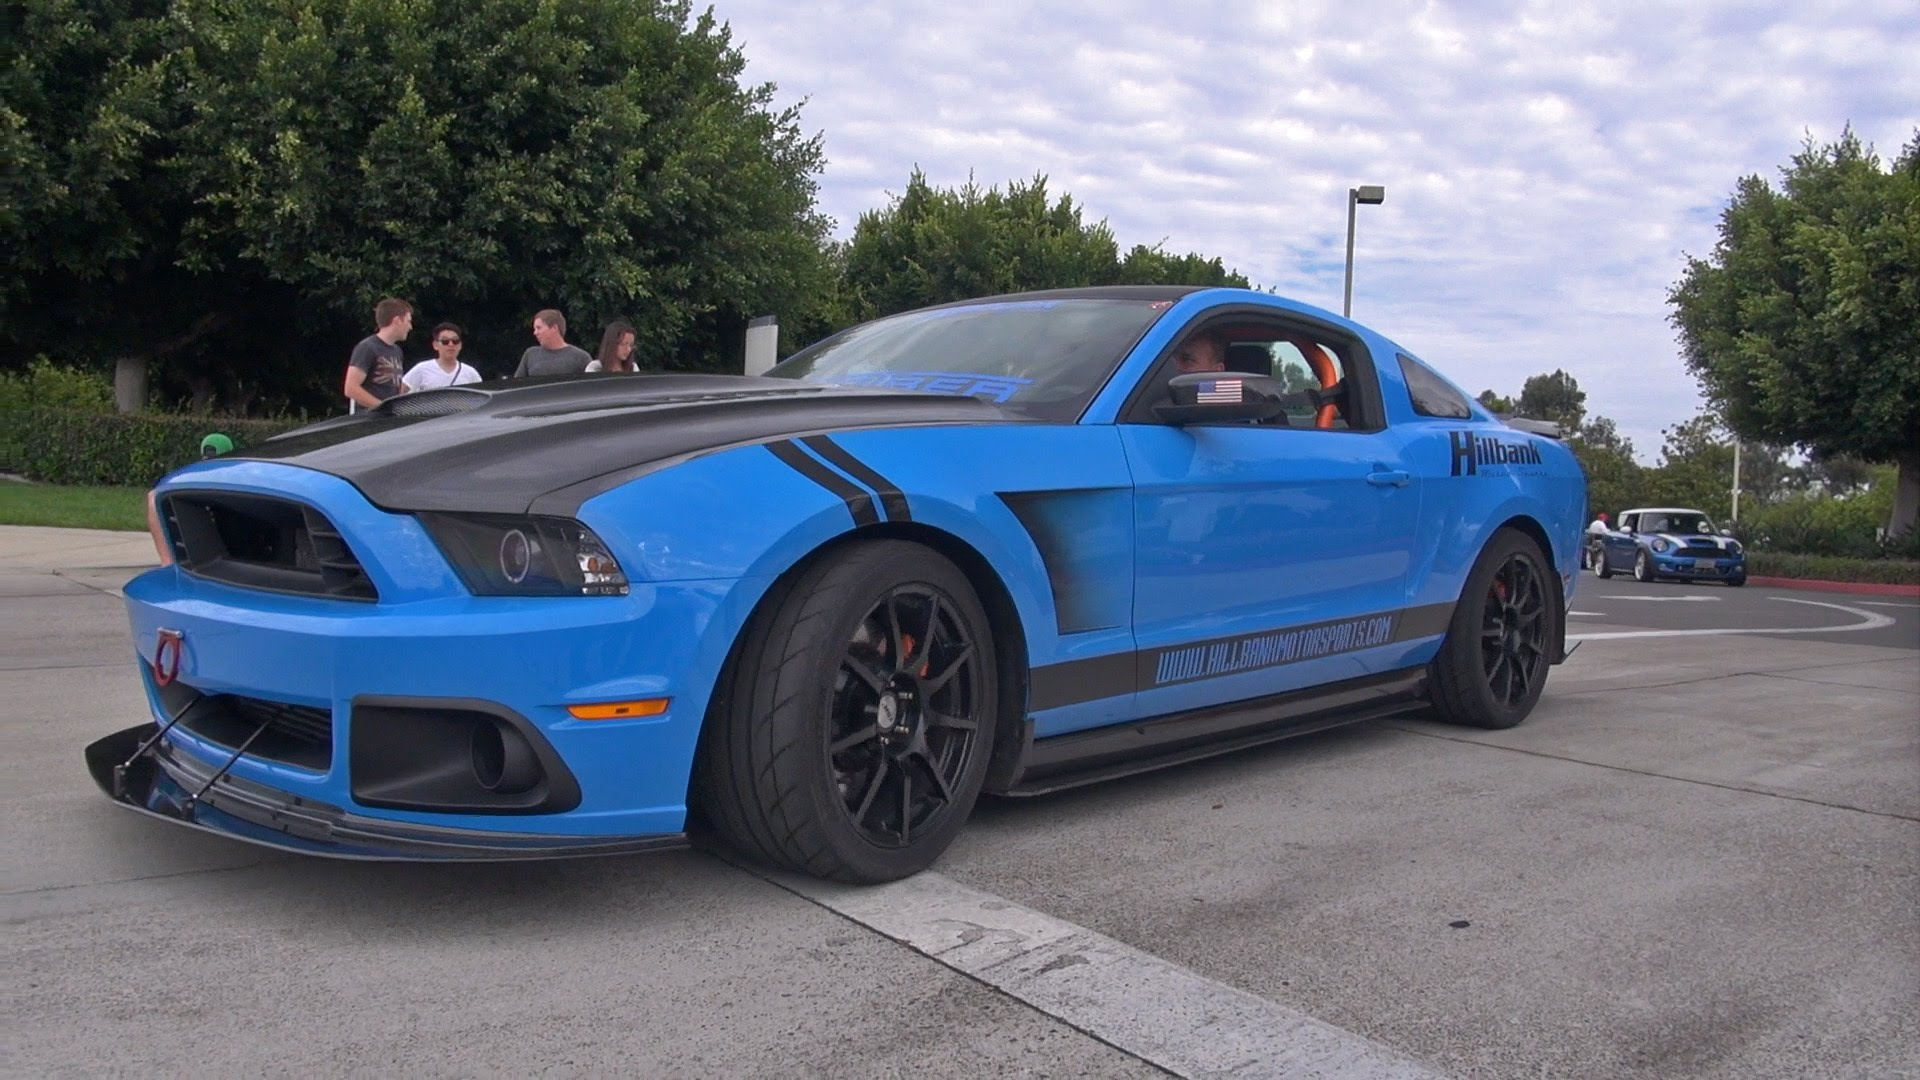 Ford Shelby Gt500 #24